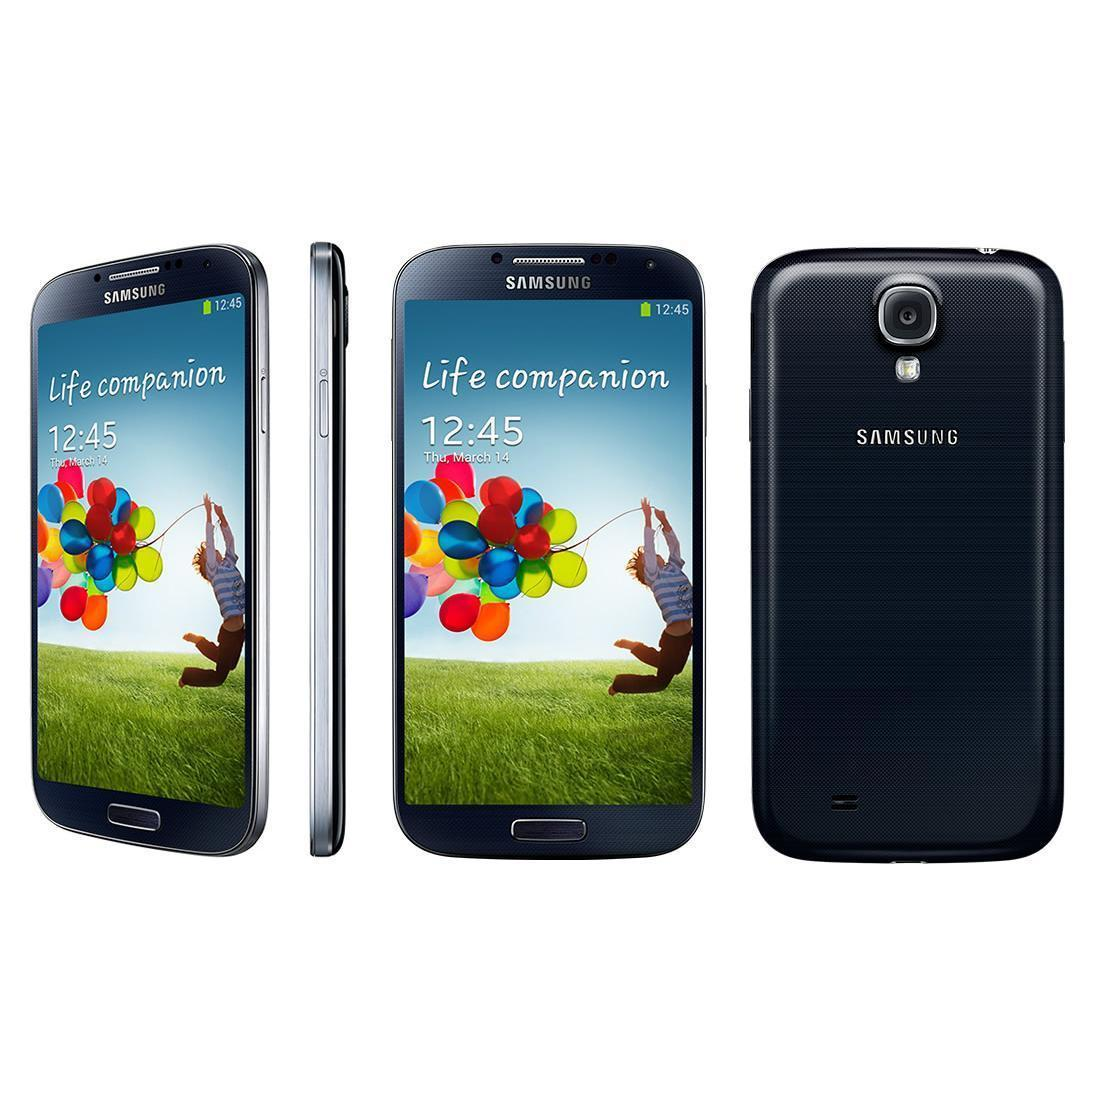 Samsung Galaxy S4 16 Go i9505 4G - Noir - Orange